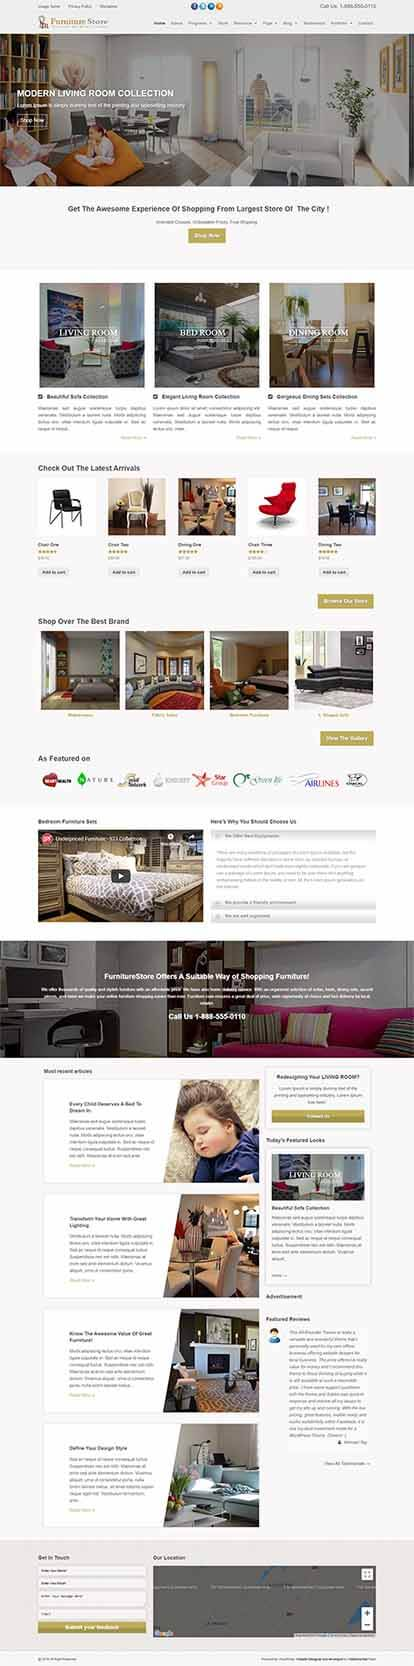 FurnitureStore WORDPRESS THEME Full Demo